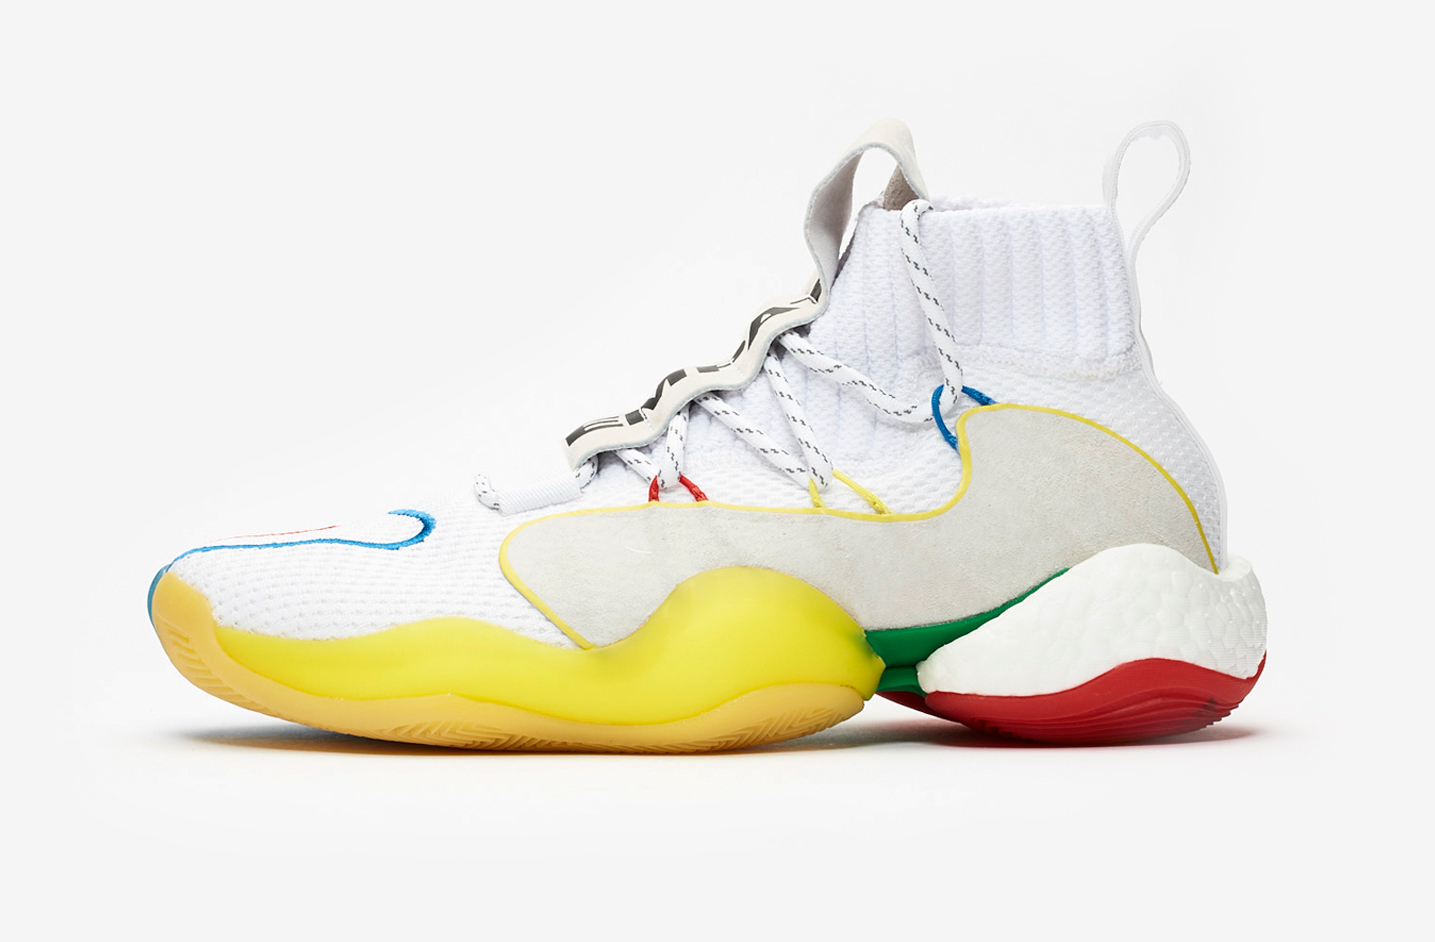 62493fdc4cf9f Pharrell x Adidas Crazy BYW Releasing In New Colorway This Week